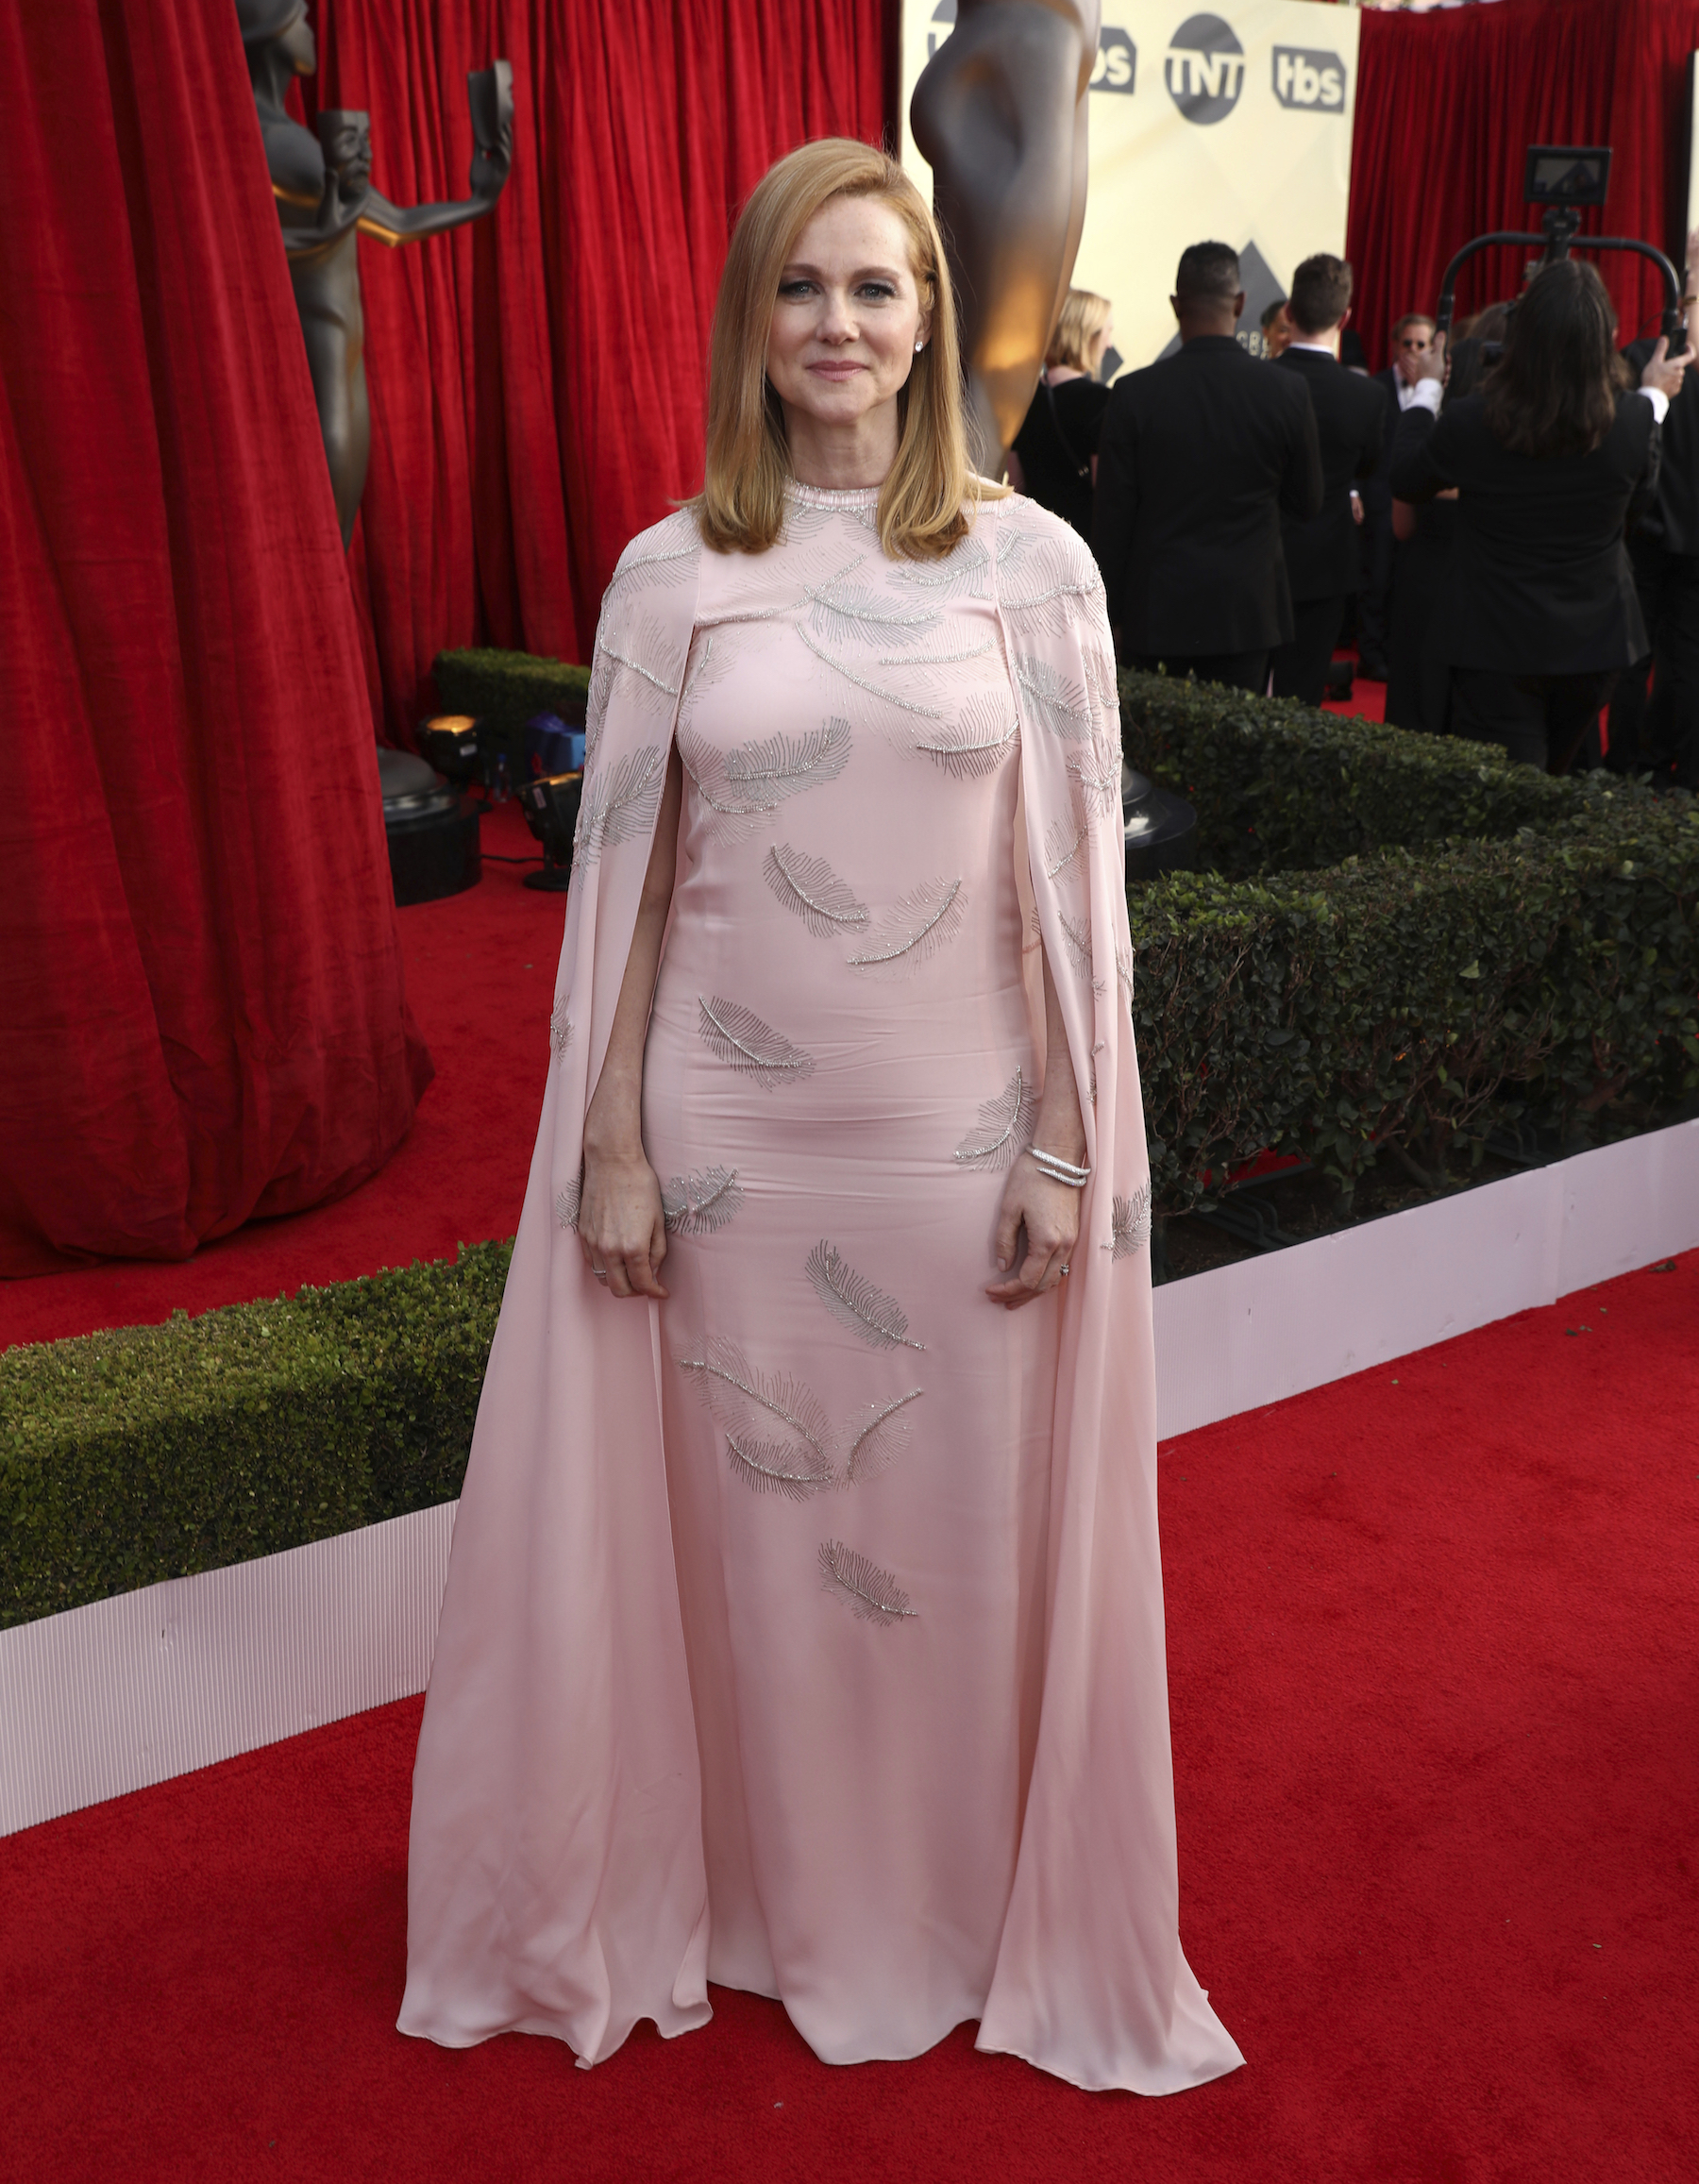 <div class='meta'><div class='origin-logo' data-origin='AP'></div><span class='caption-text' data-credit='Matt Sayles/Invision/AP'>Laura Linney arrives at the 24th annual Screen Actors Guild Awards at the Shrine Auditorium & Expo Hall on Sunday, Jan. 21, 2018, in Los Angeles.</span></div>